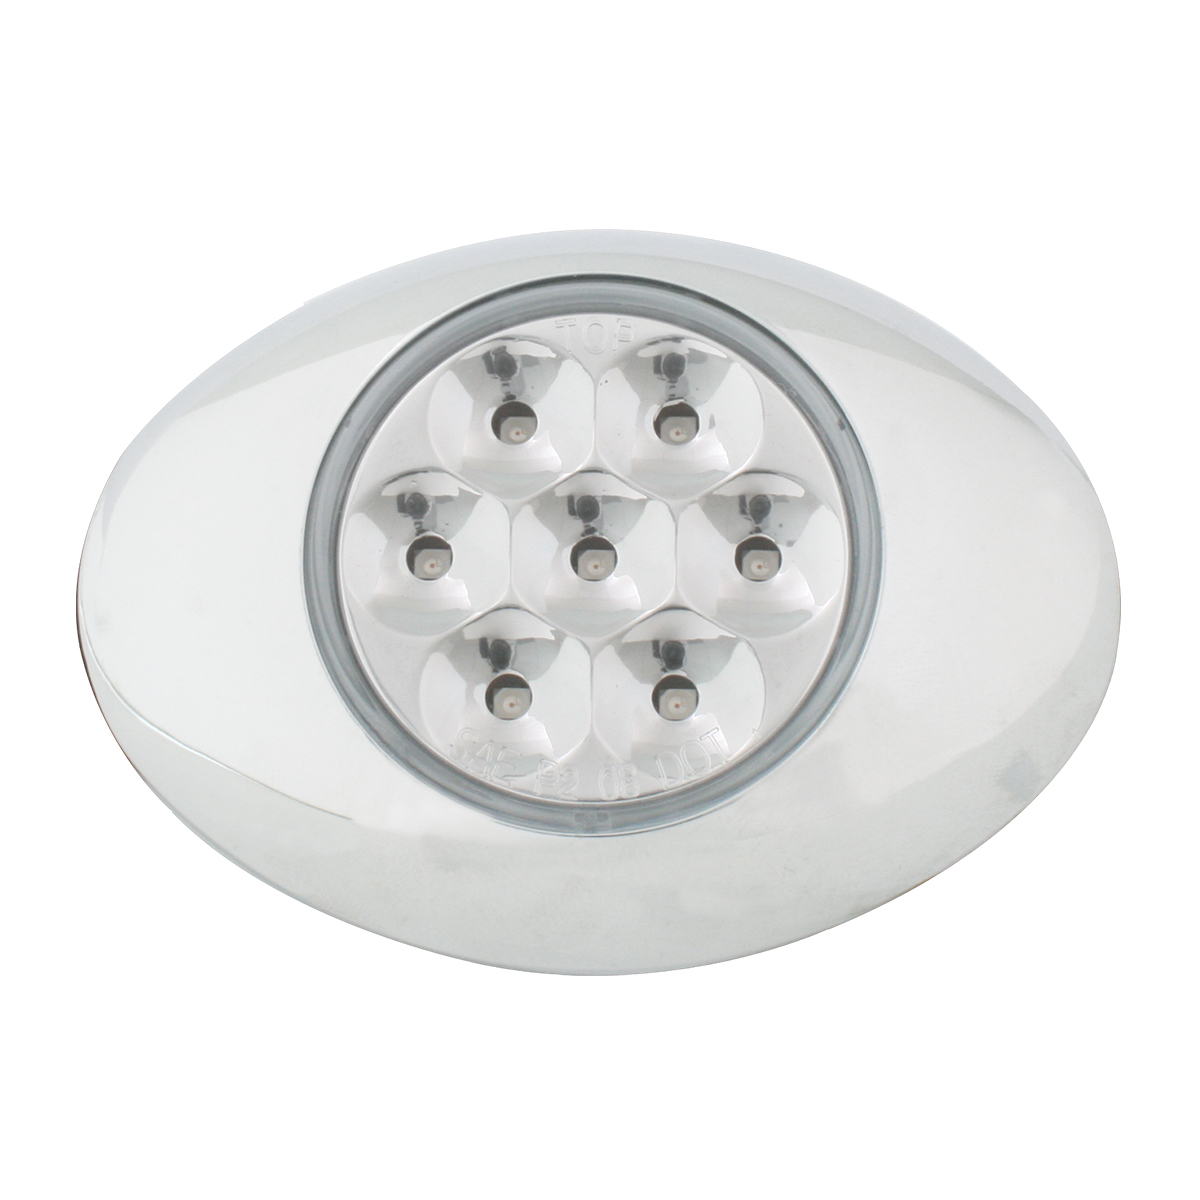 Small Pearl LED Light in Clear Lens with Chrome Bezel